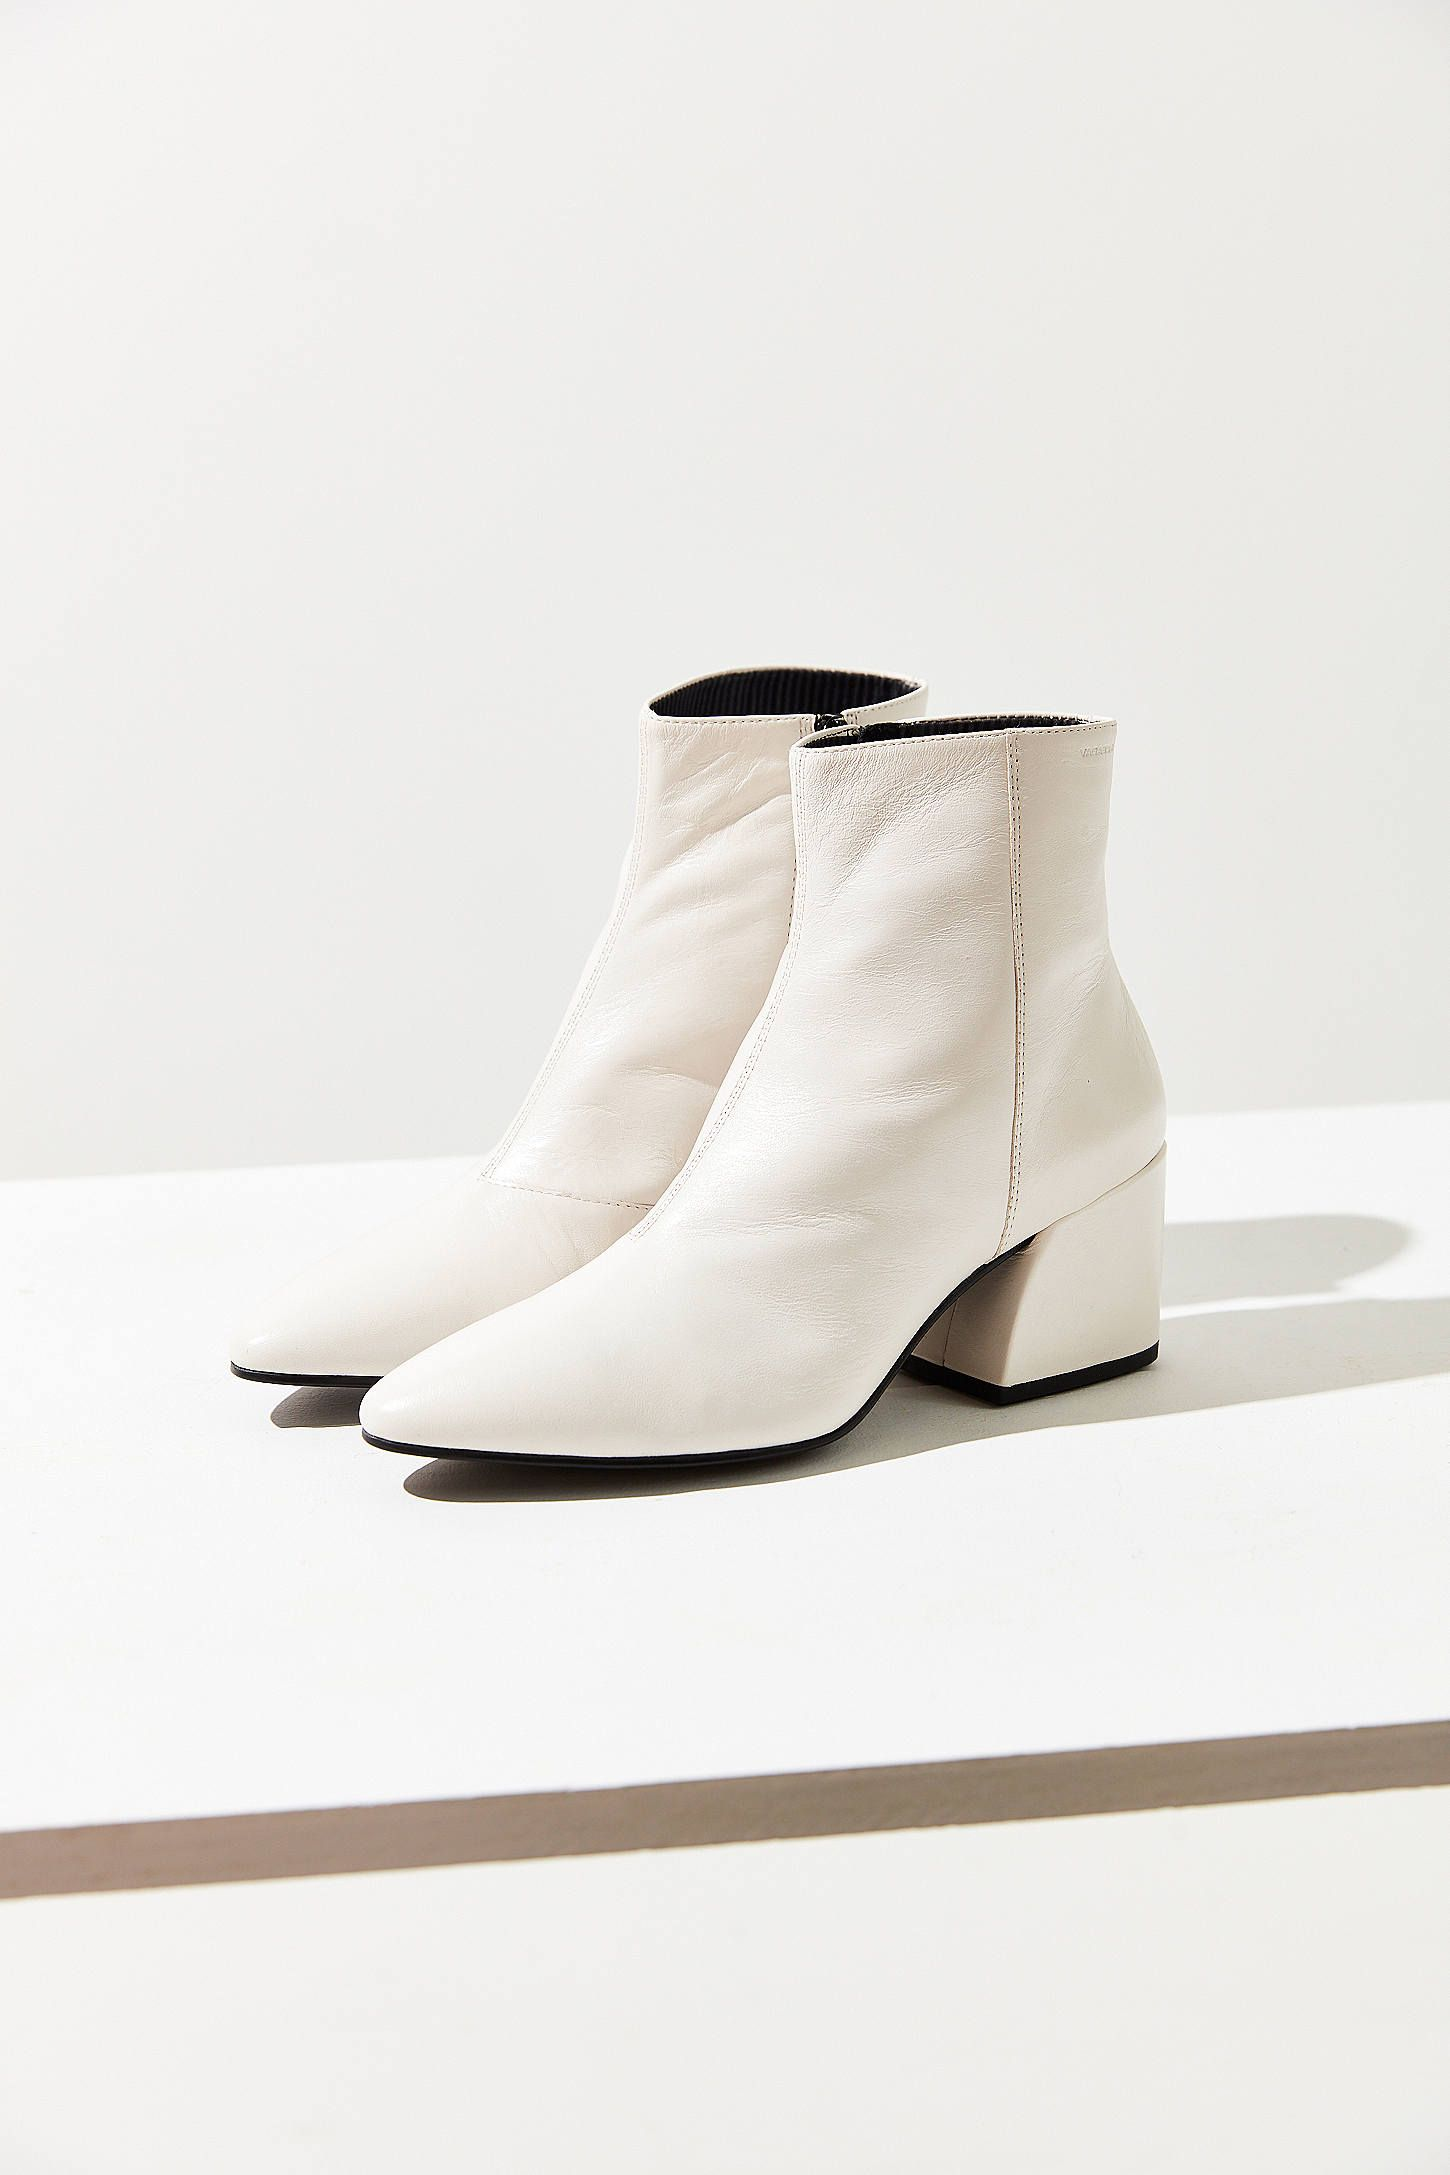 e5470a7decc7 Shop Vagabond Olivia Leather Boot at Urban Outfitters today. We carry all  the latest styles, colors and brands for you to choose from right here.